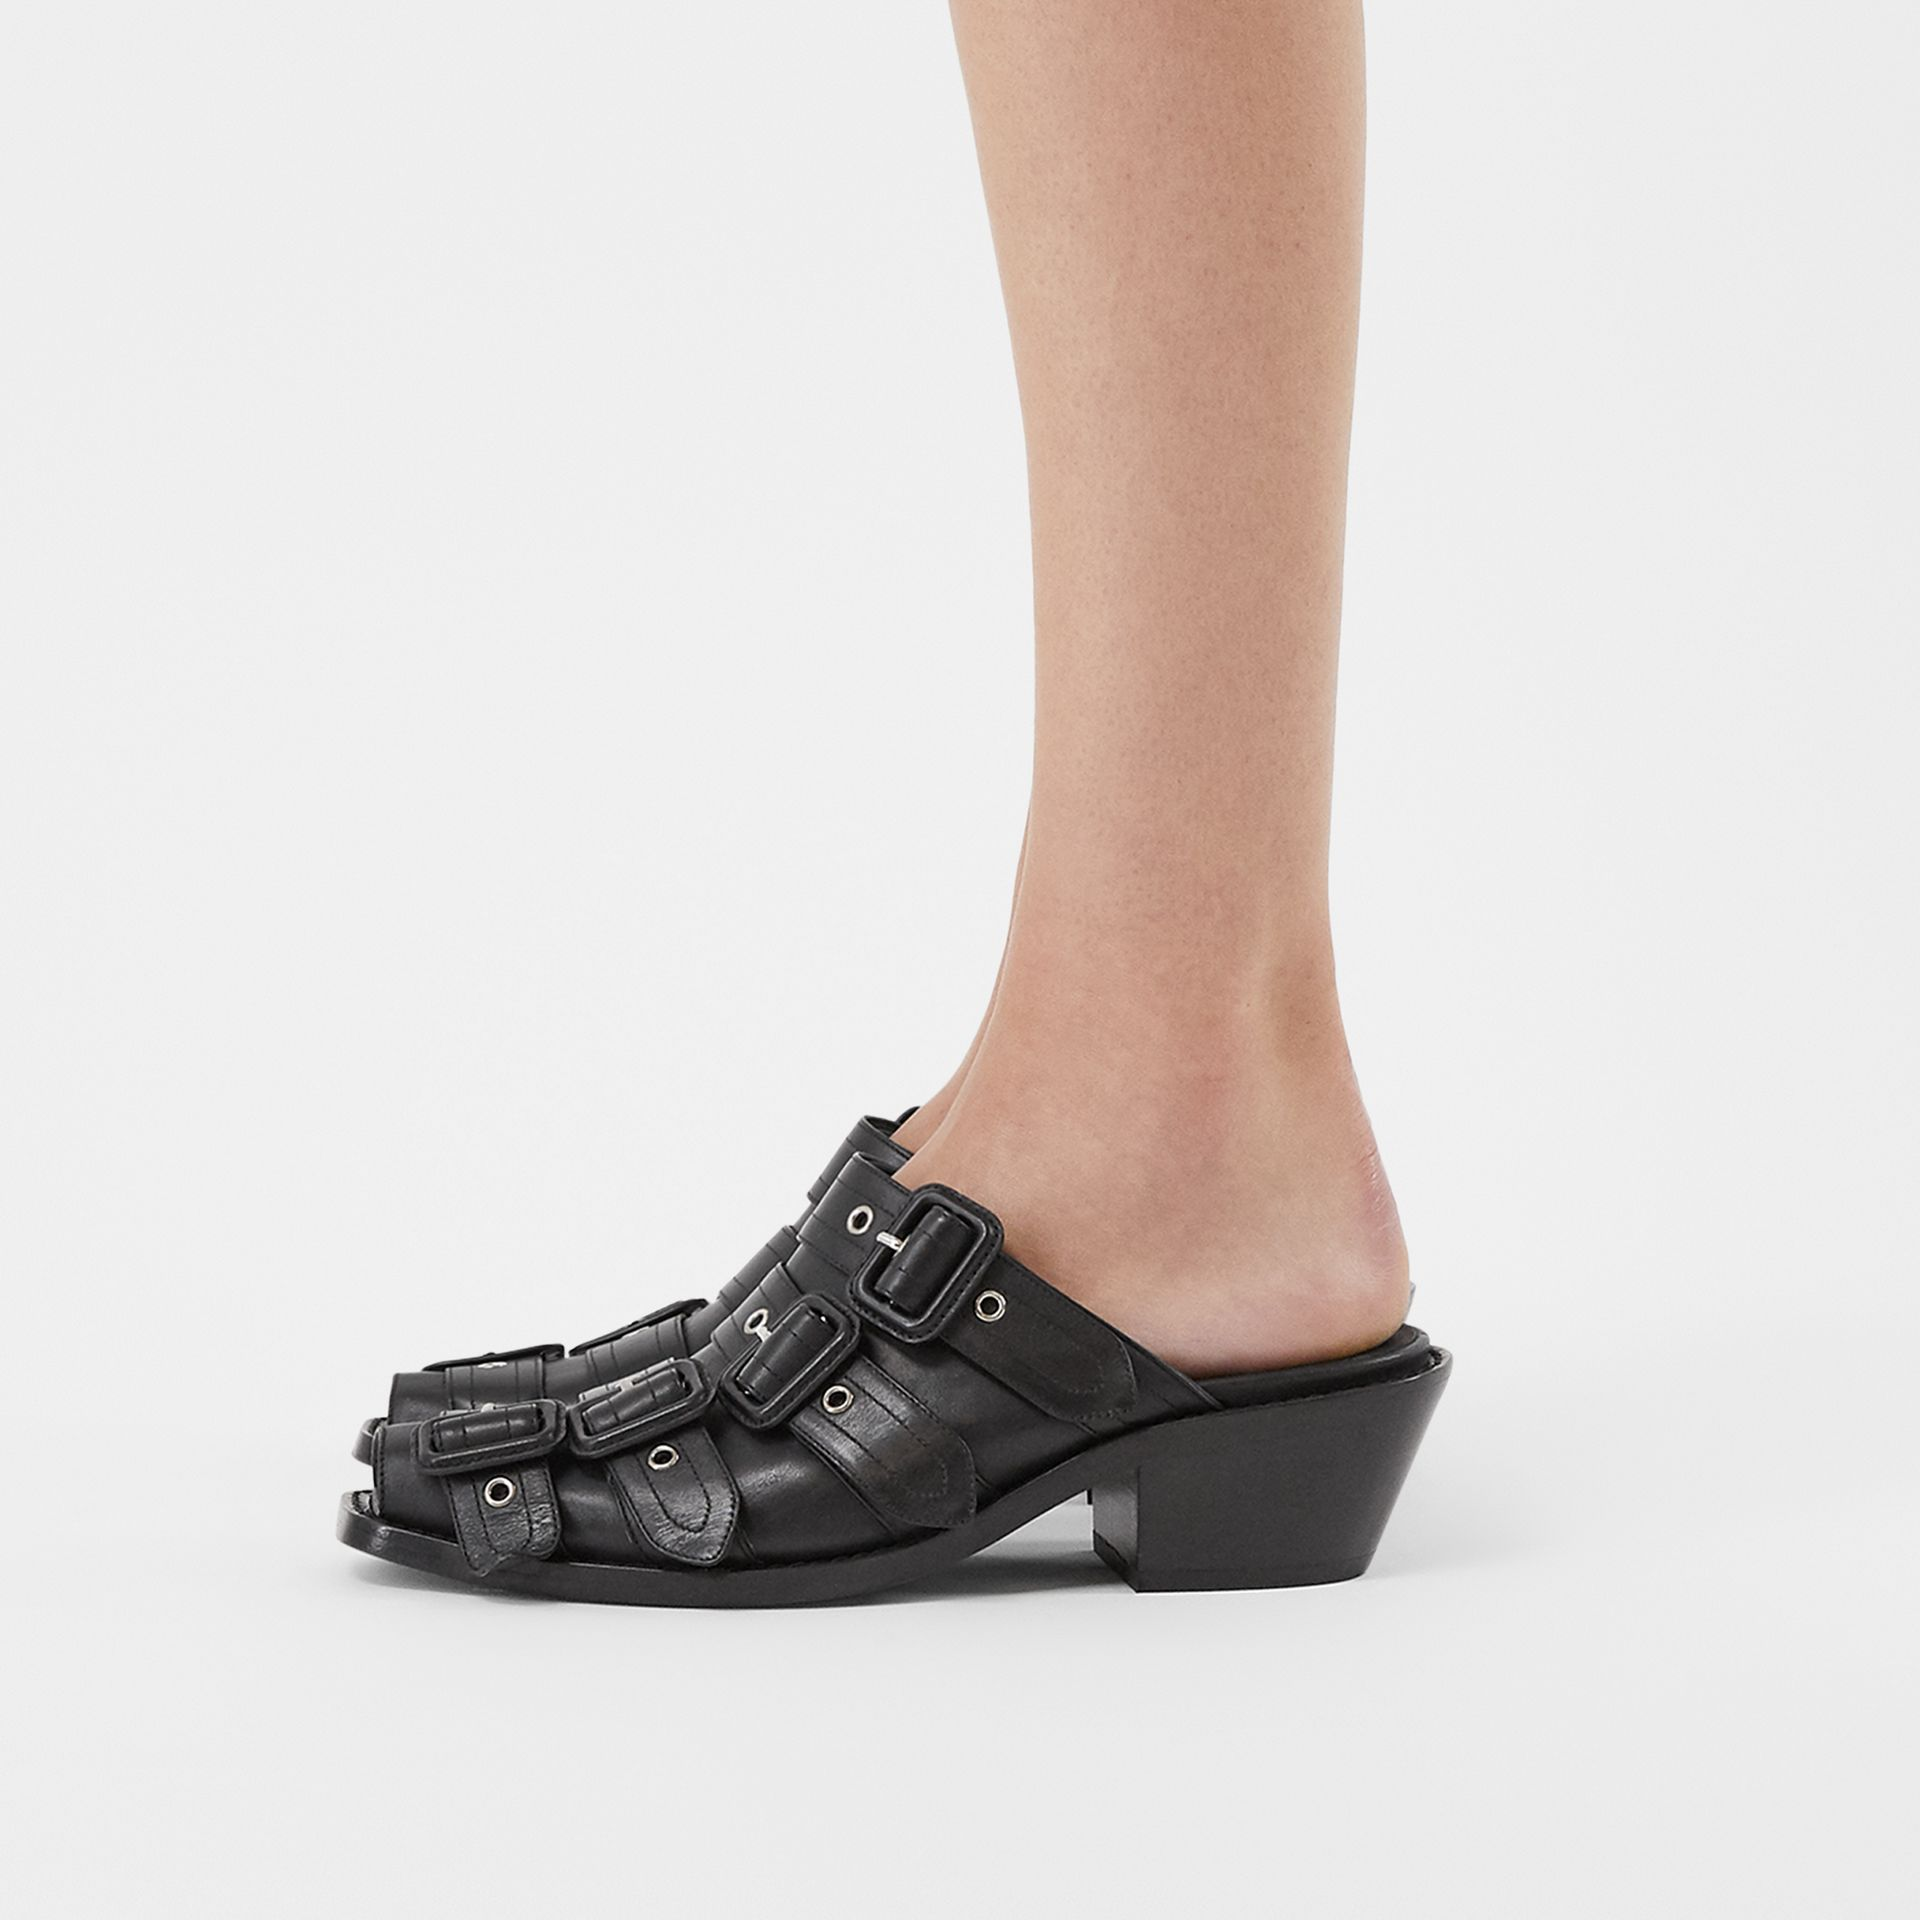 Buckled Leather Peep-toe Mules in Black - Women | Burberry United Kingdom - gallery image 2